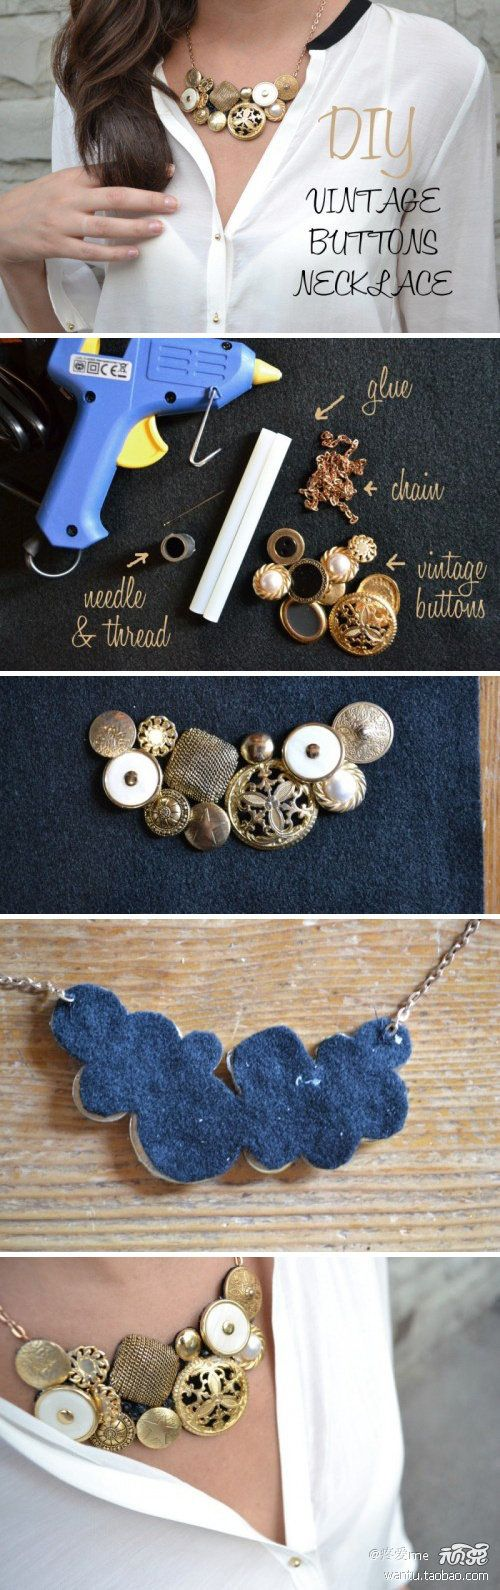 Vintage Buttons Necklace